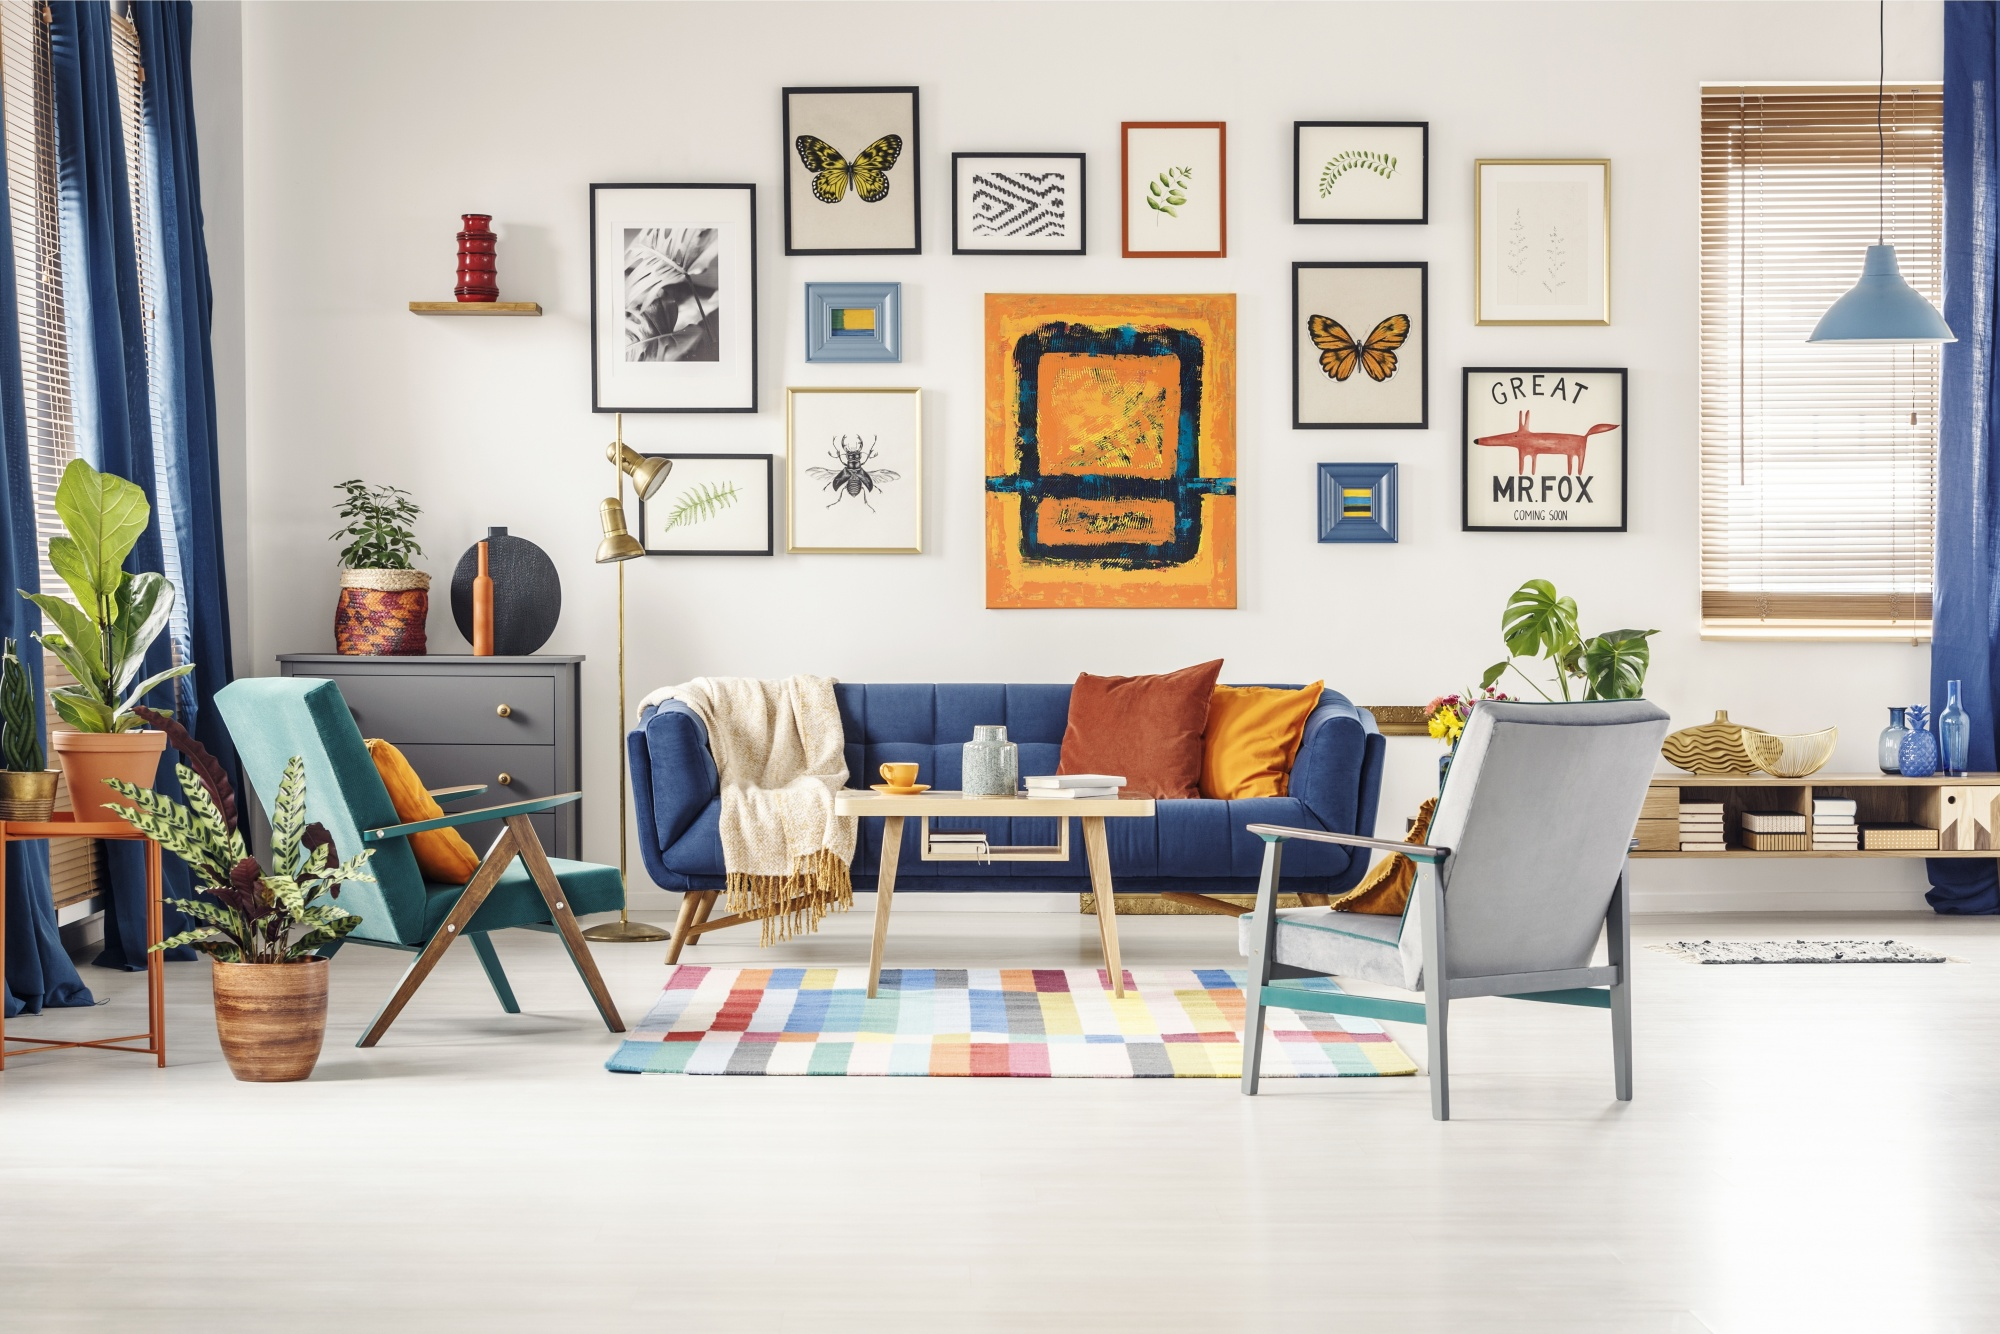 5 Easy Steps To The Perfect and Unique Gallery Wall above a blue couch with multiple artistic images and butterflies framed against an all white wall